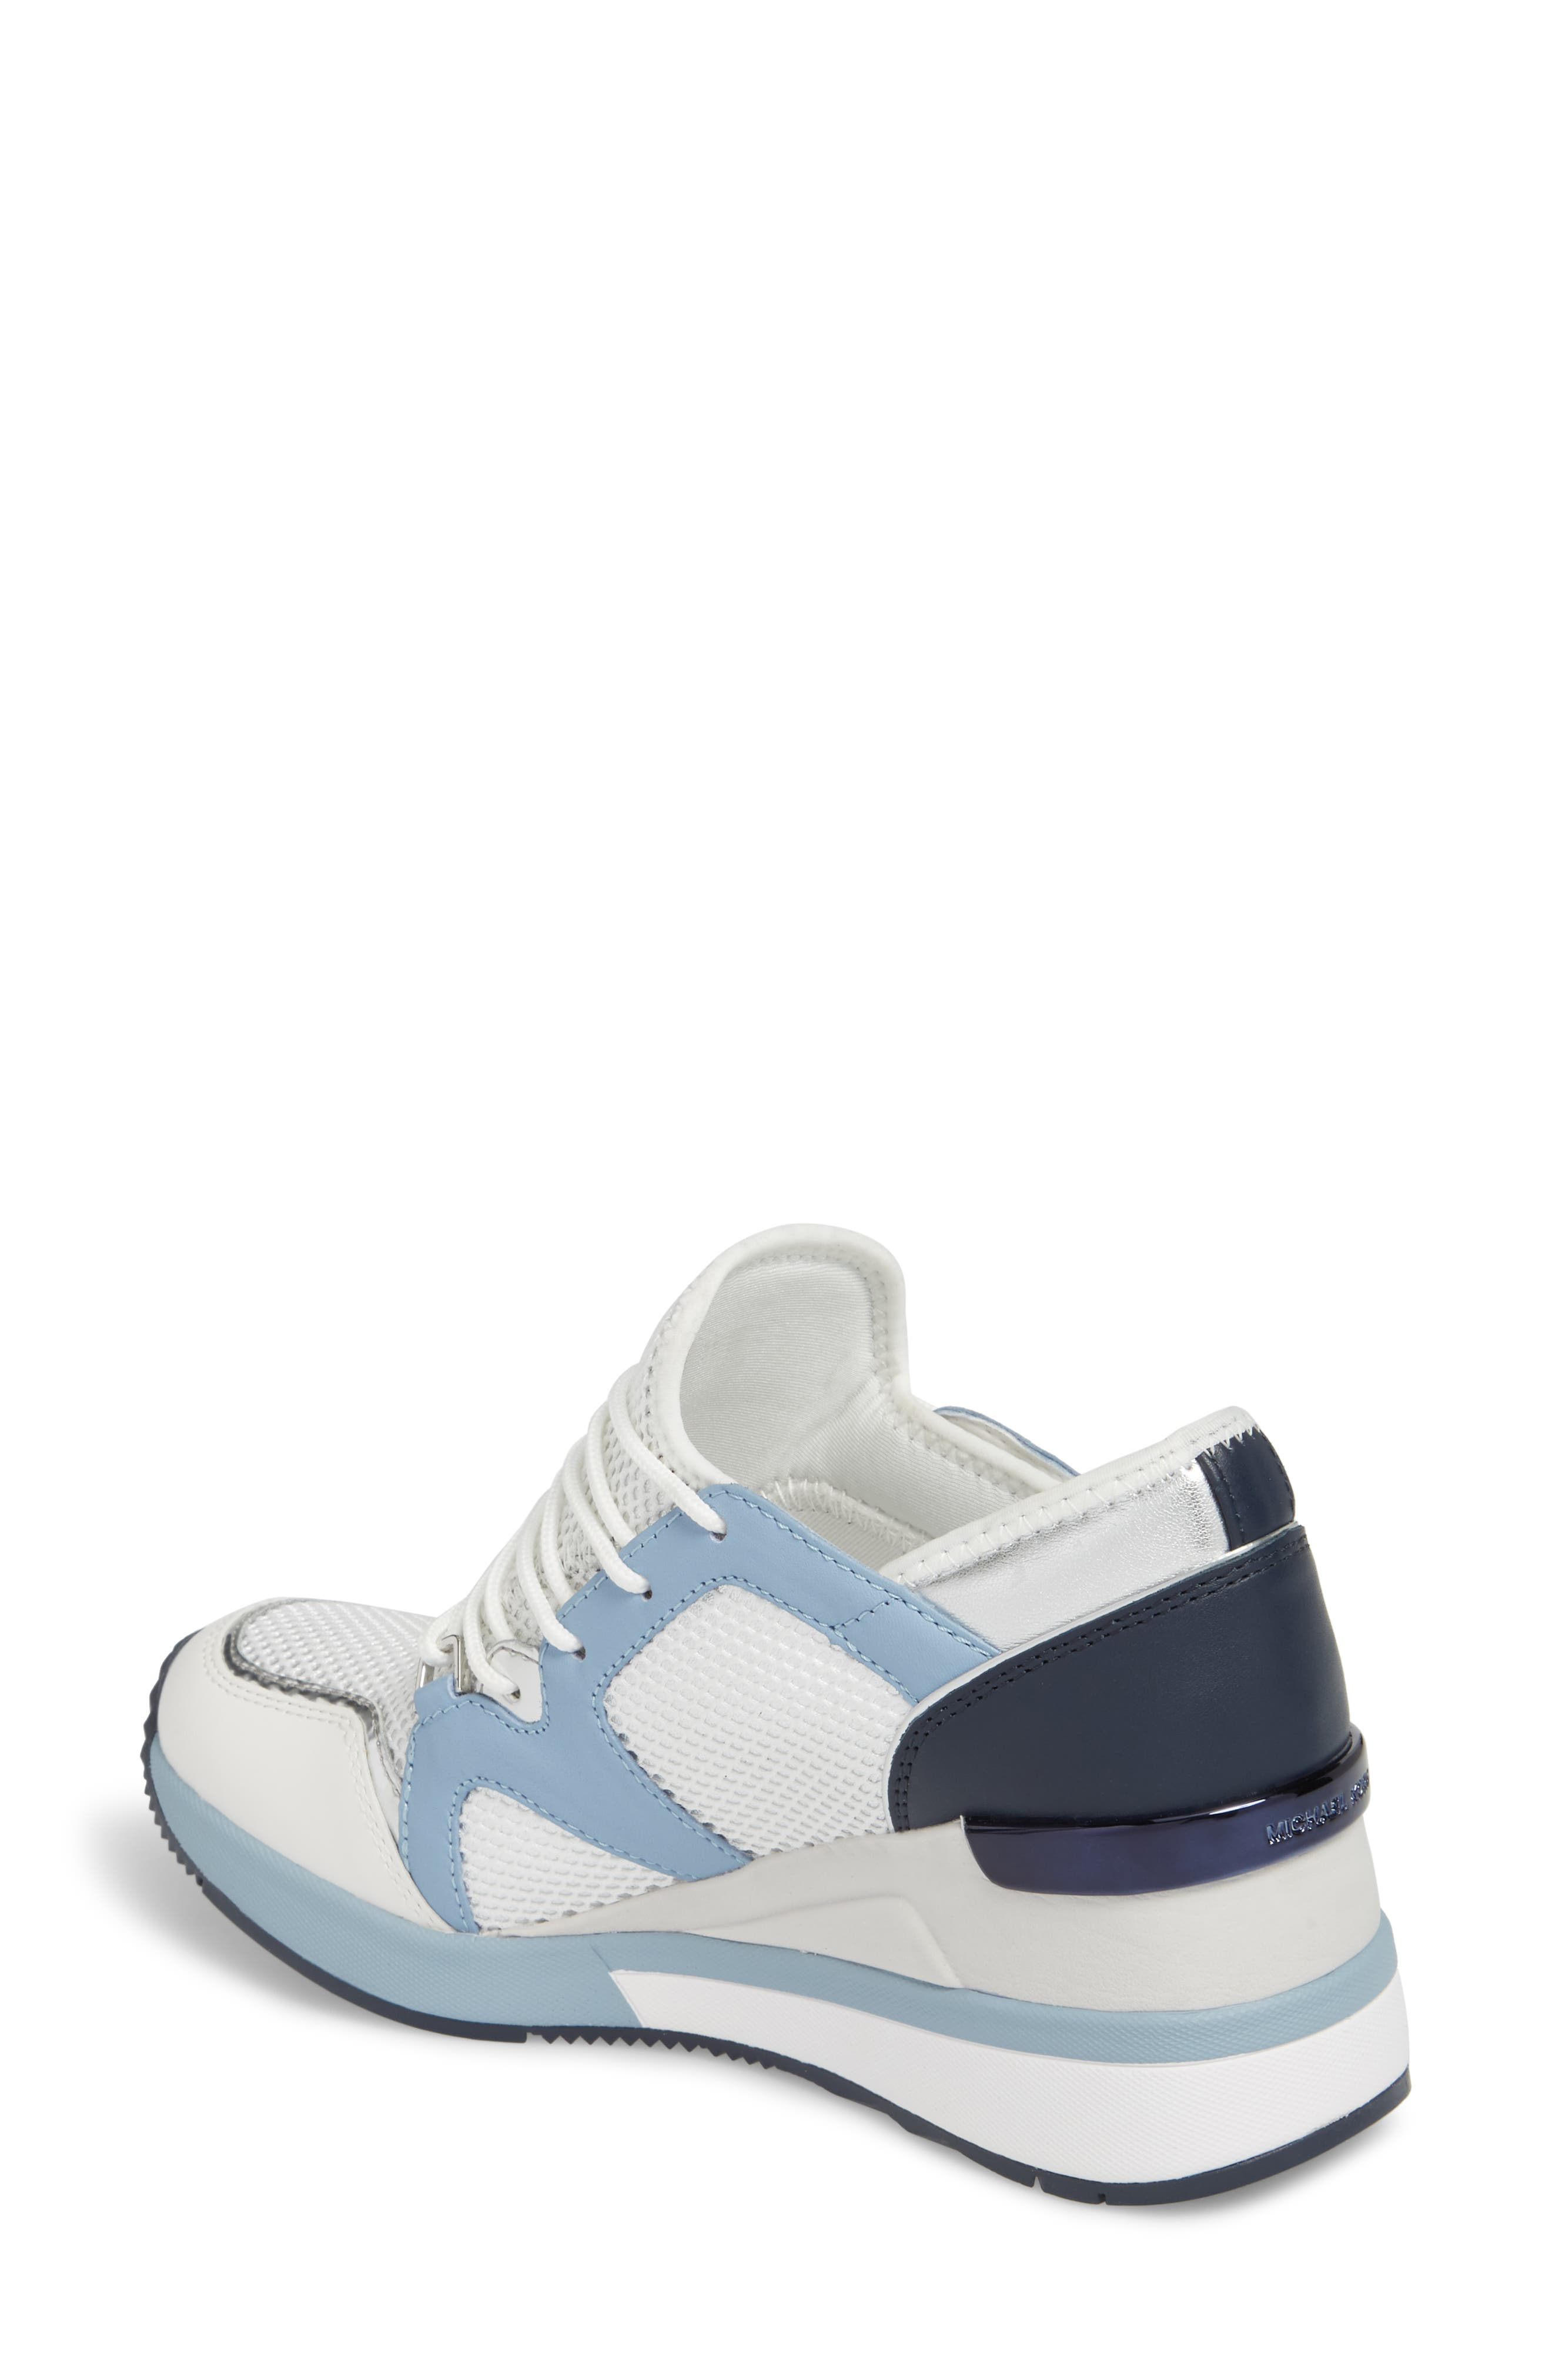 Scout Wedge Sneaker,                             Alternate thumbnail 2, color,                             Optic White/Blue